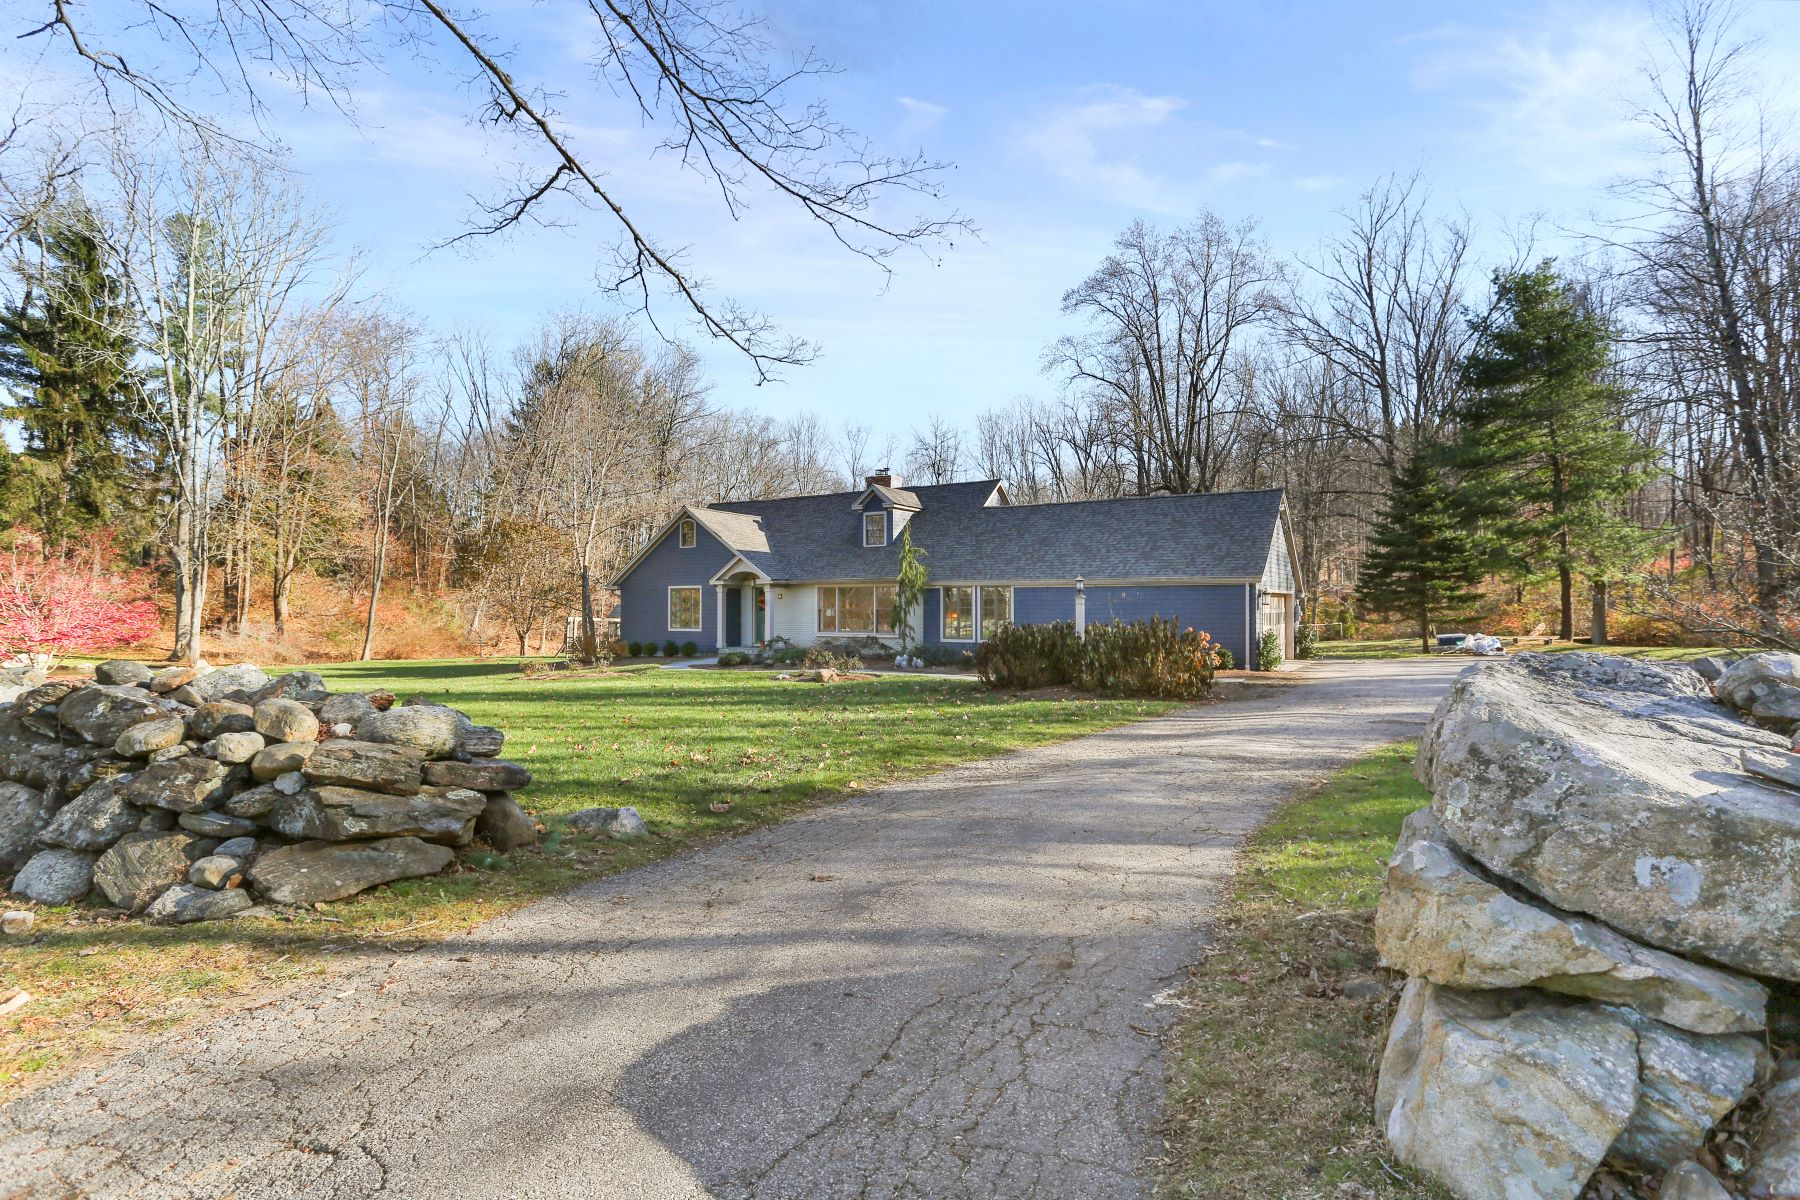 Single Family Homes for Sale at 10 Diamond Hill Road Redding, Connecticut 06896 United States